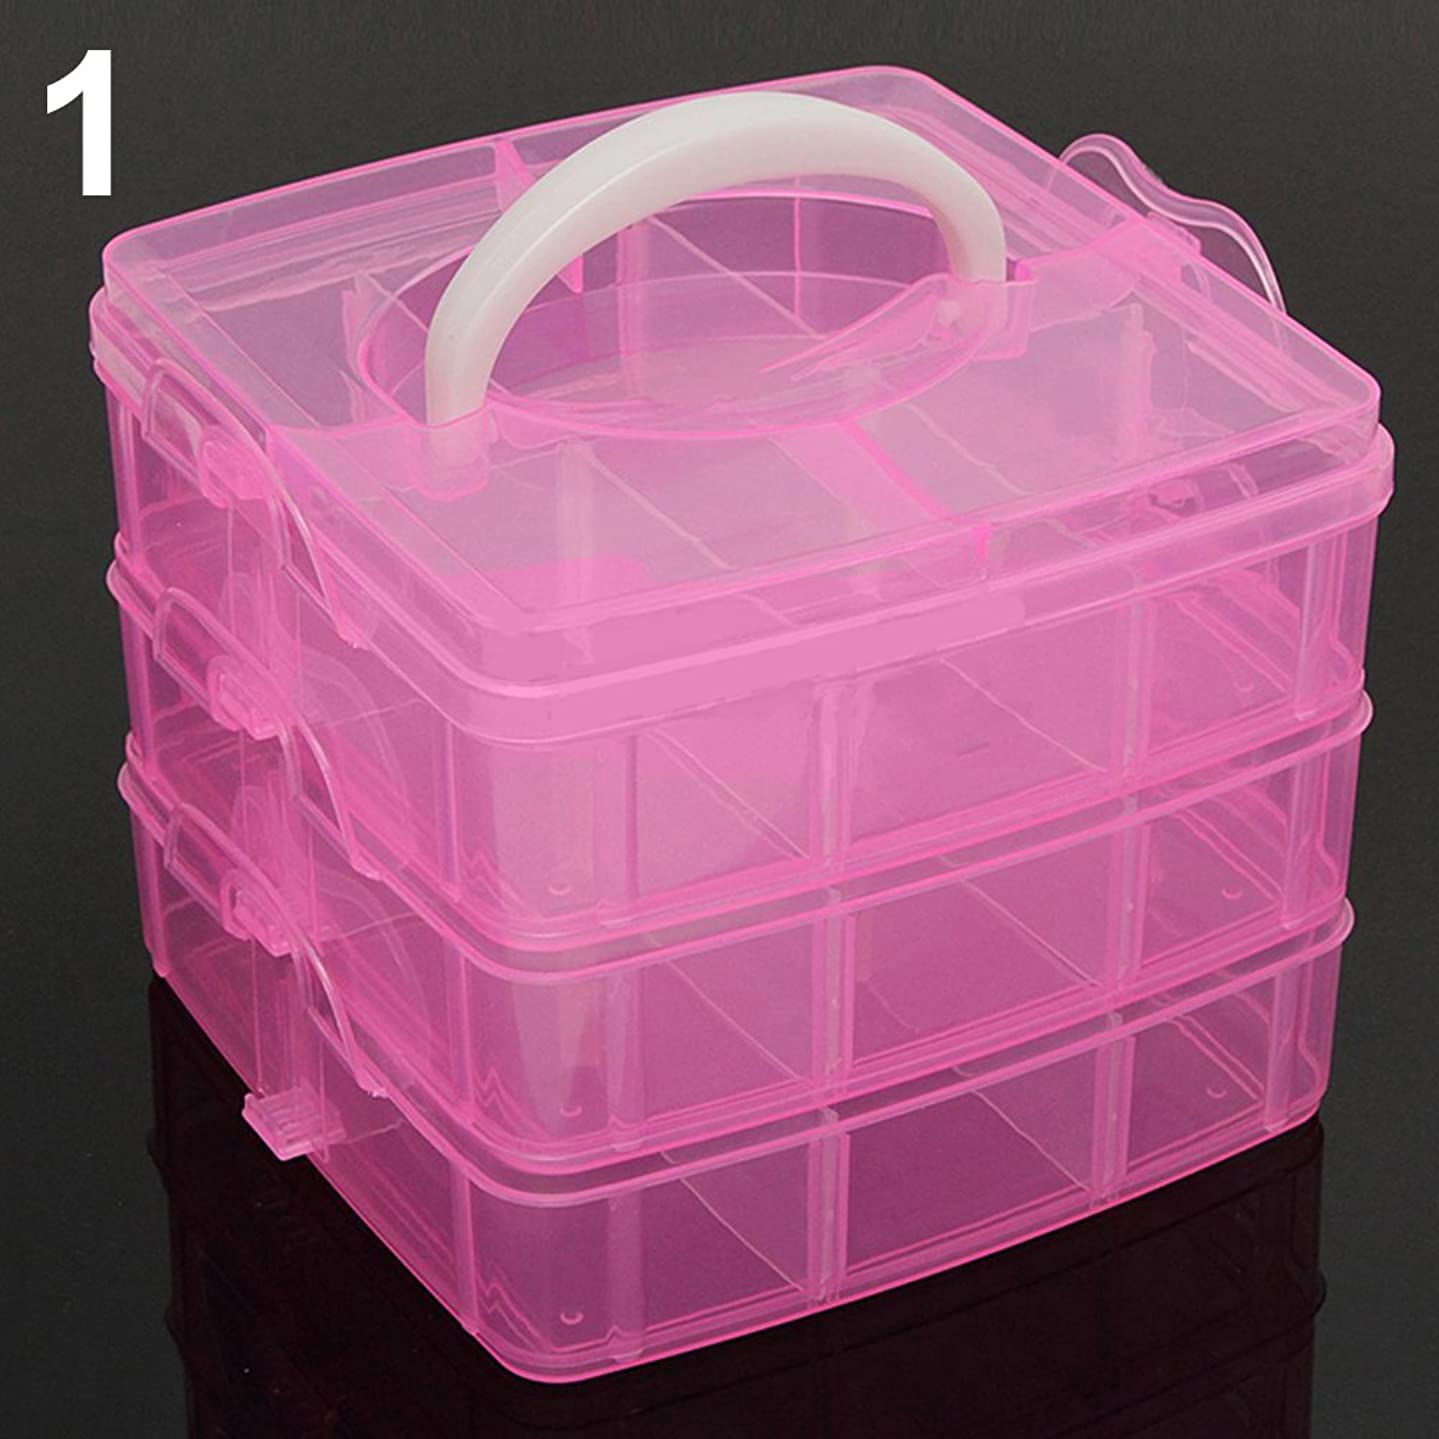 Baost 3-Layer Detachable Portable Clear Plastic Ornament Box Holder Carrier Art Craft Jewelry Earring Ring Beads Sewing Accessories Storage Organizer Container Case with Handle Pink